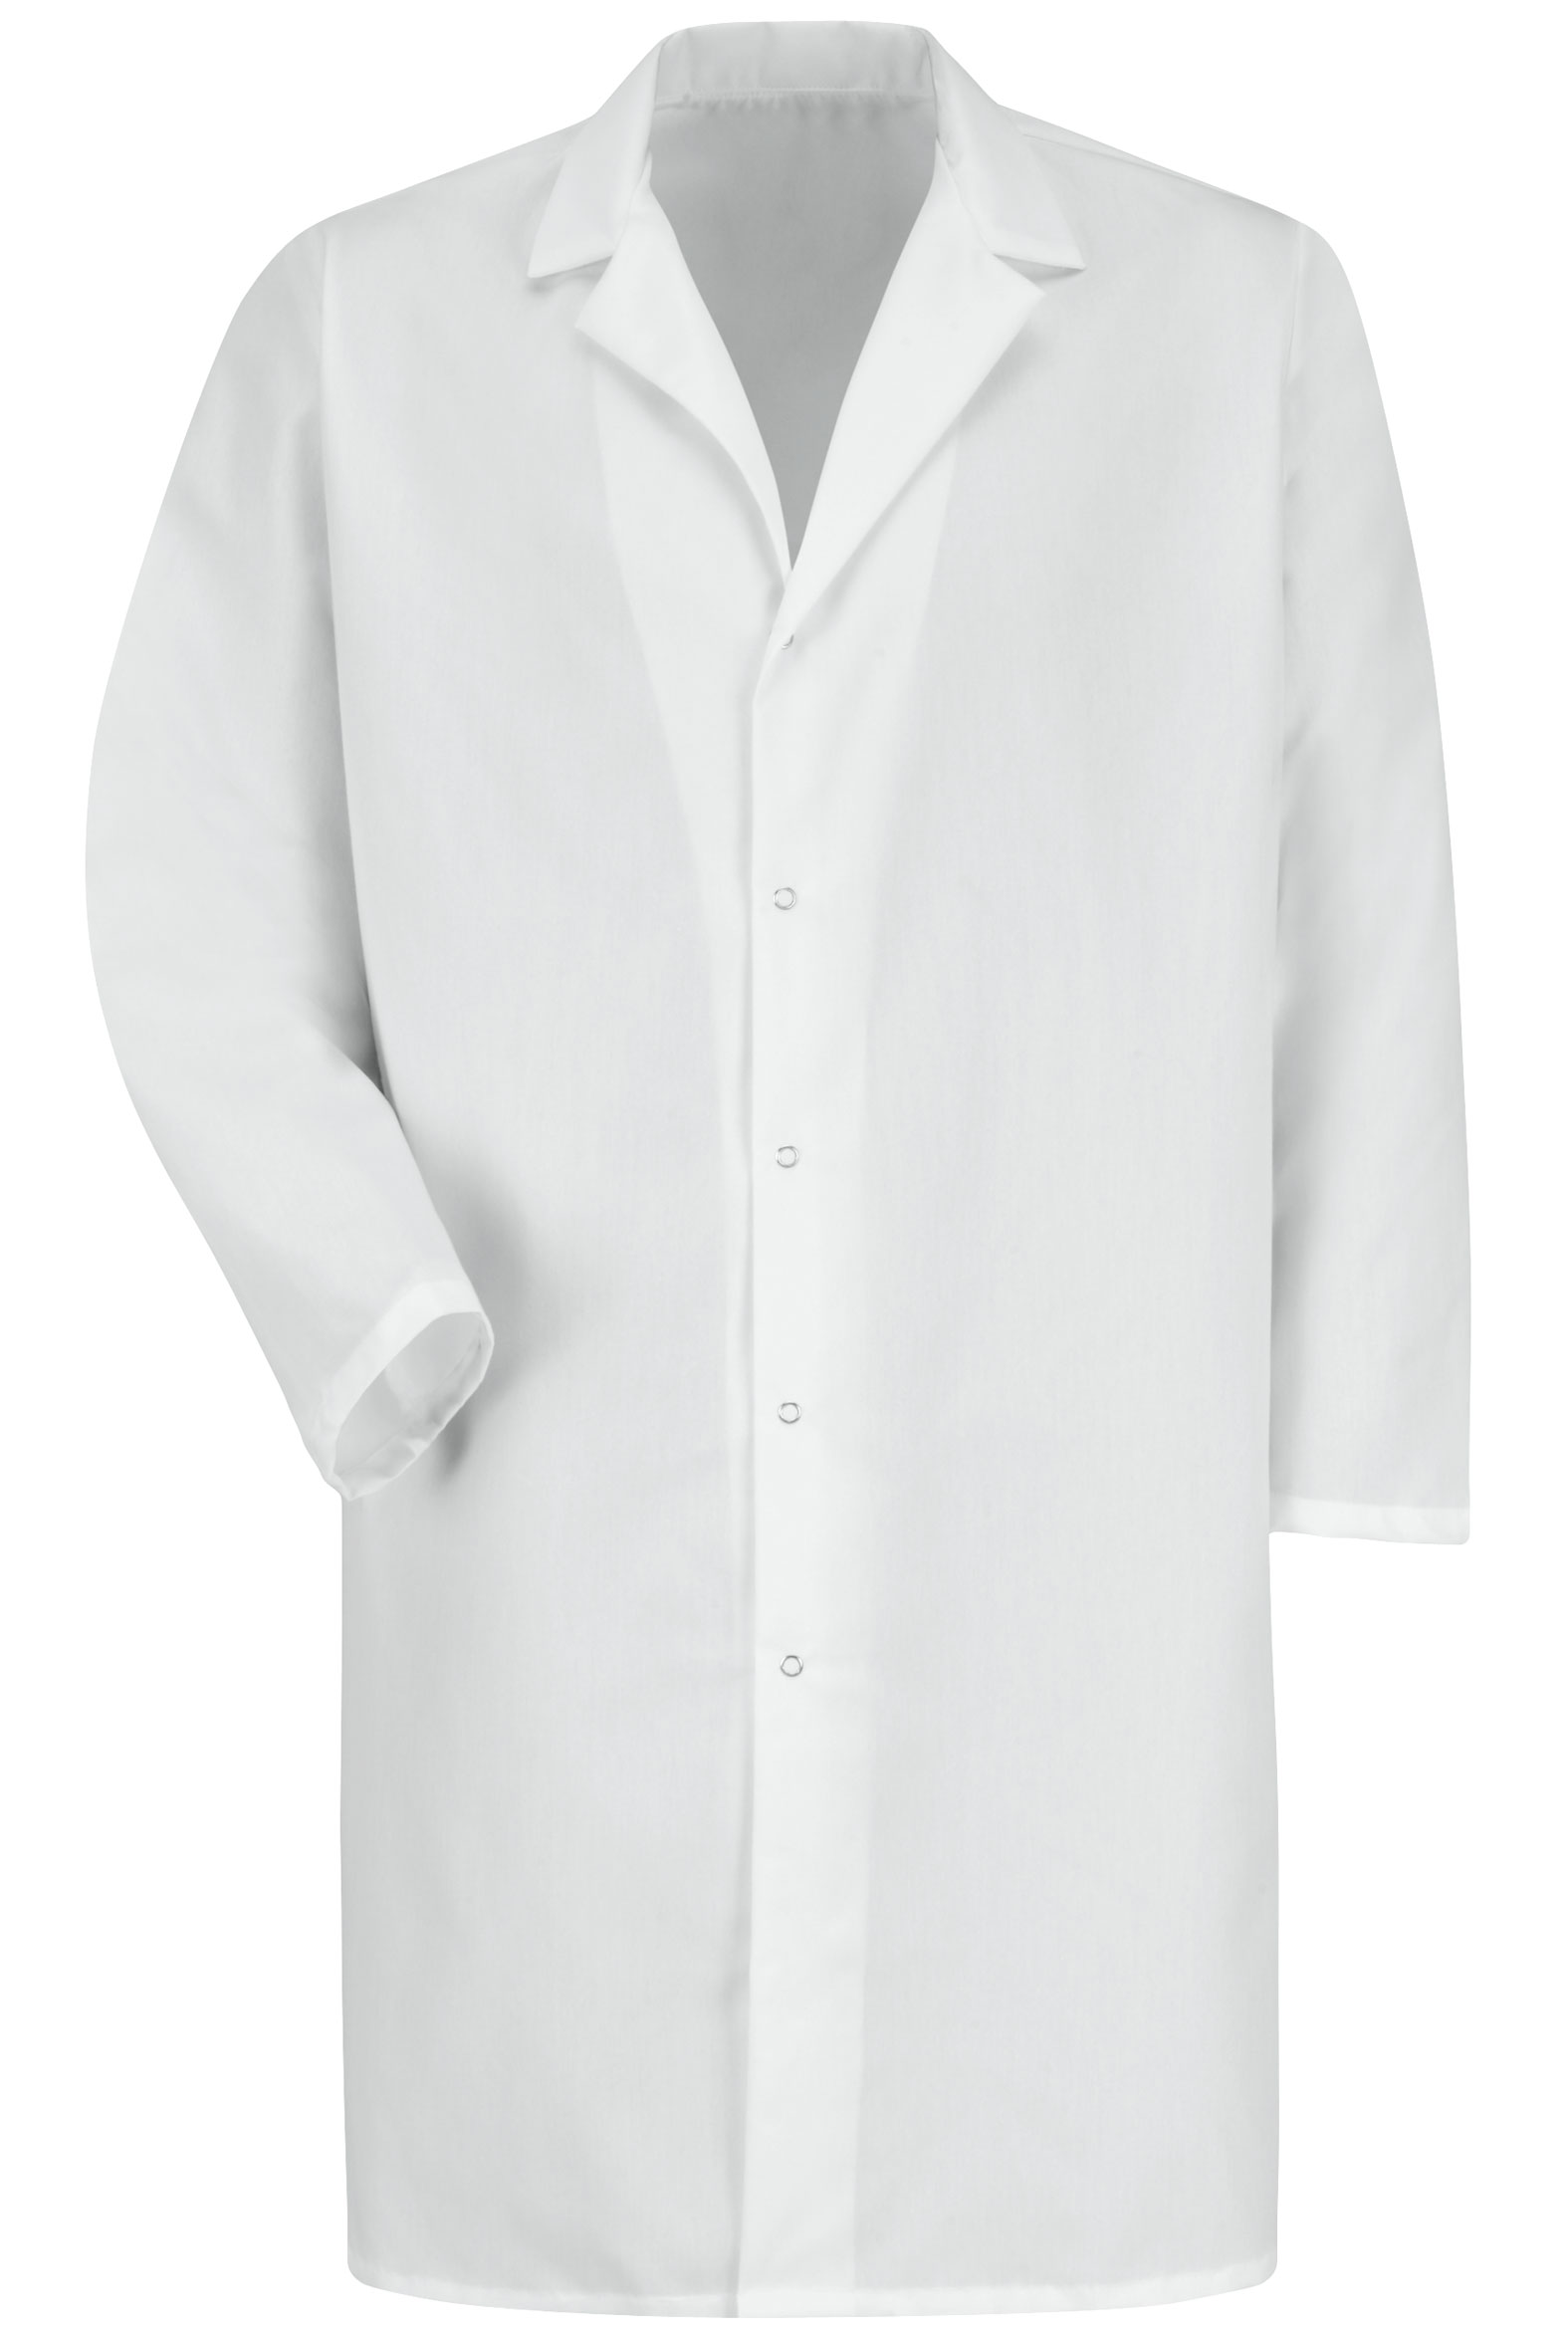 Specialized Gripper Lab Coat by Red Kap